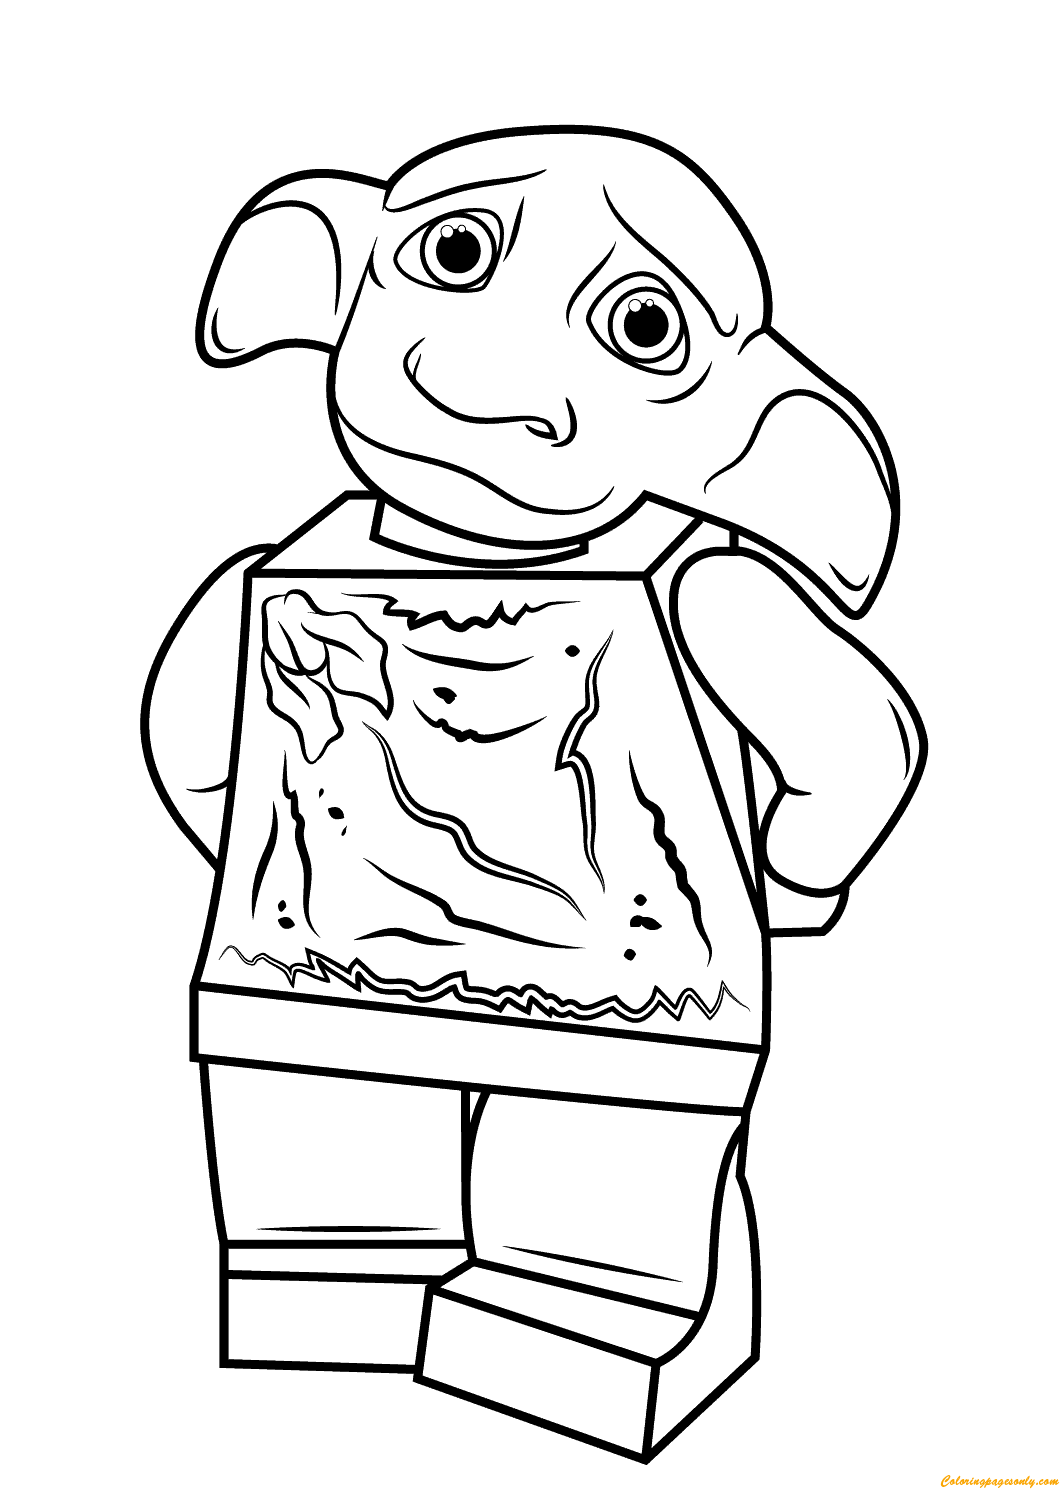 Lego Dobby Harry Potter Coloring Page - Free Coloring Pages Online